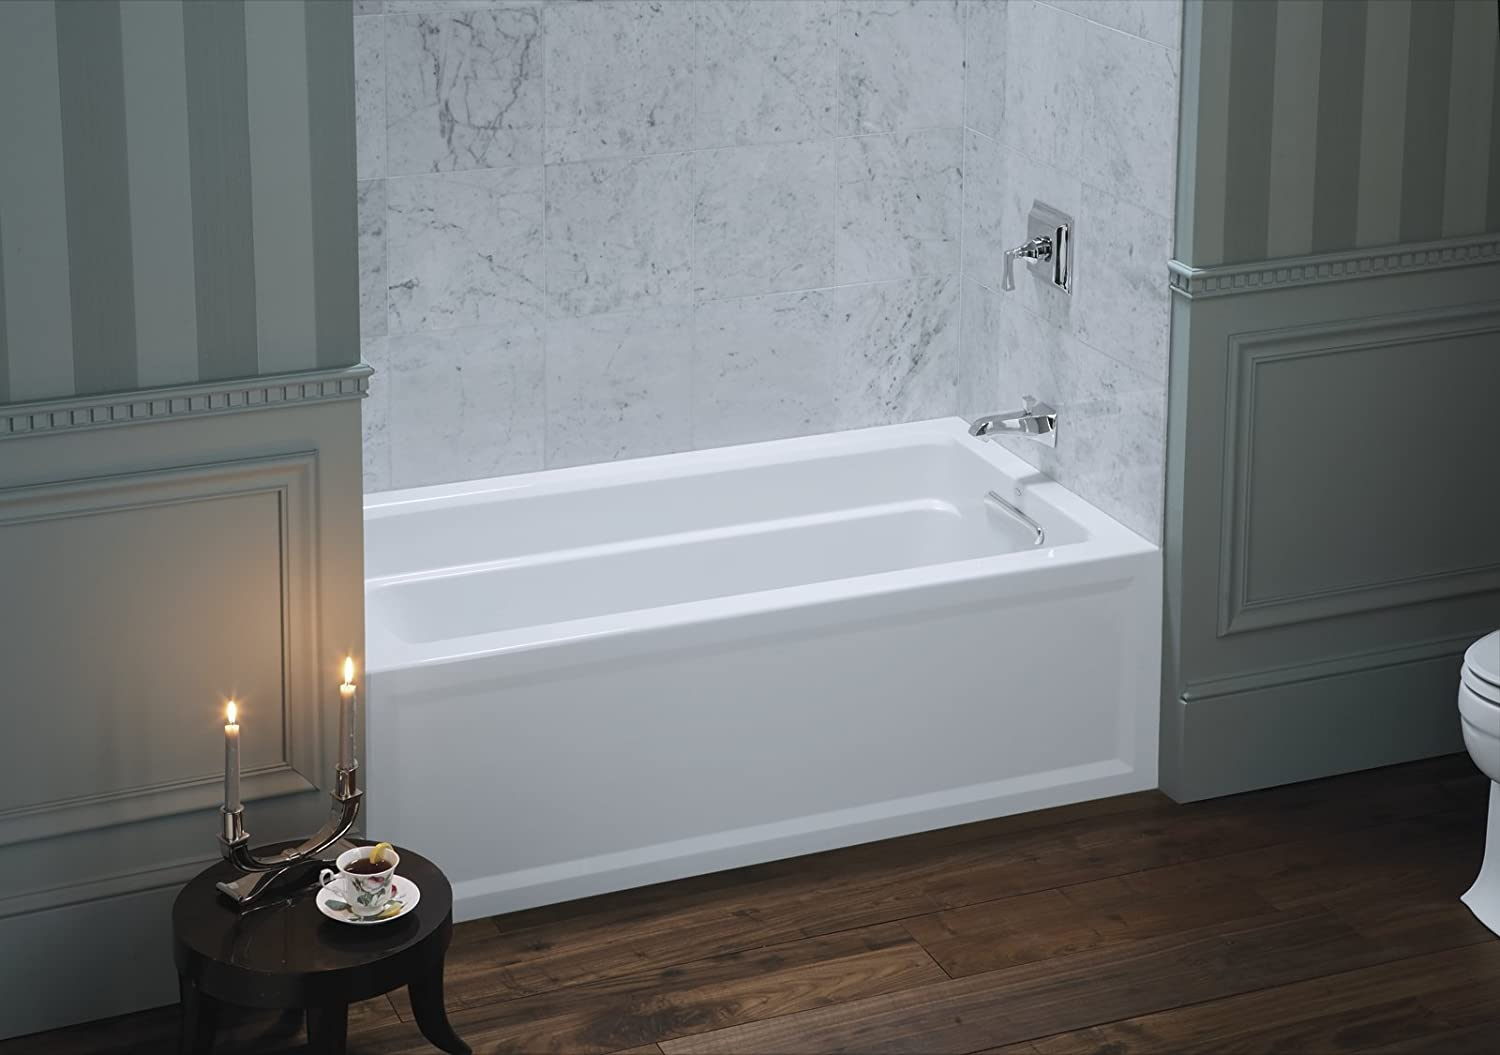 KOHLER K-1123-RA-0 Archer 5-Foot Bath with Comfort Depth Design ...